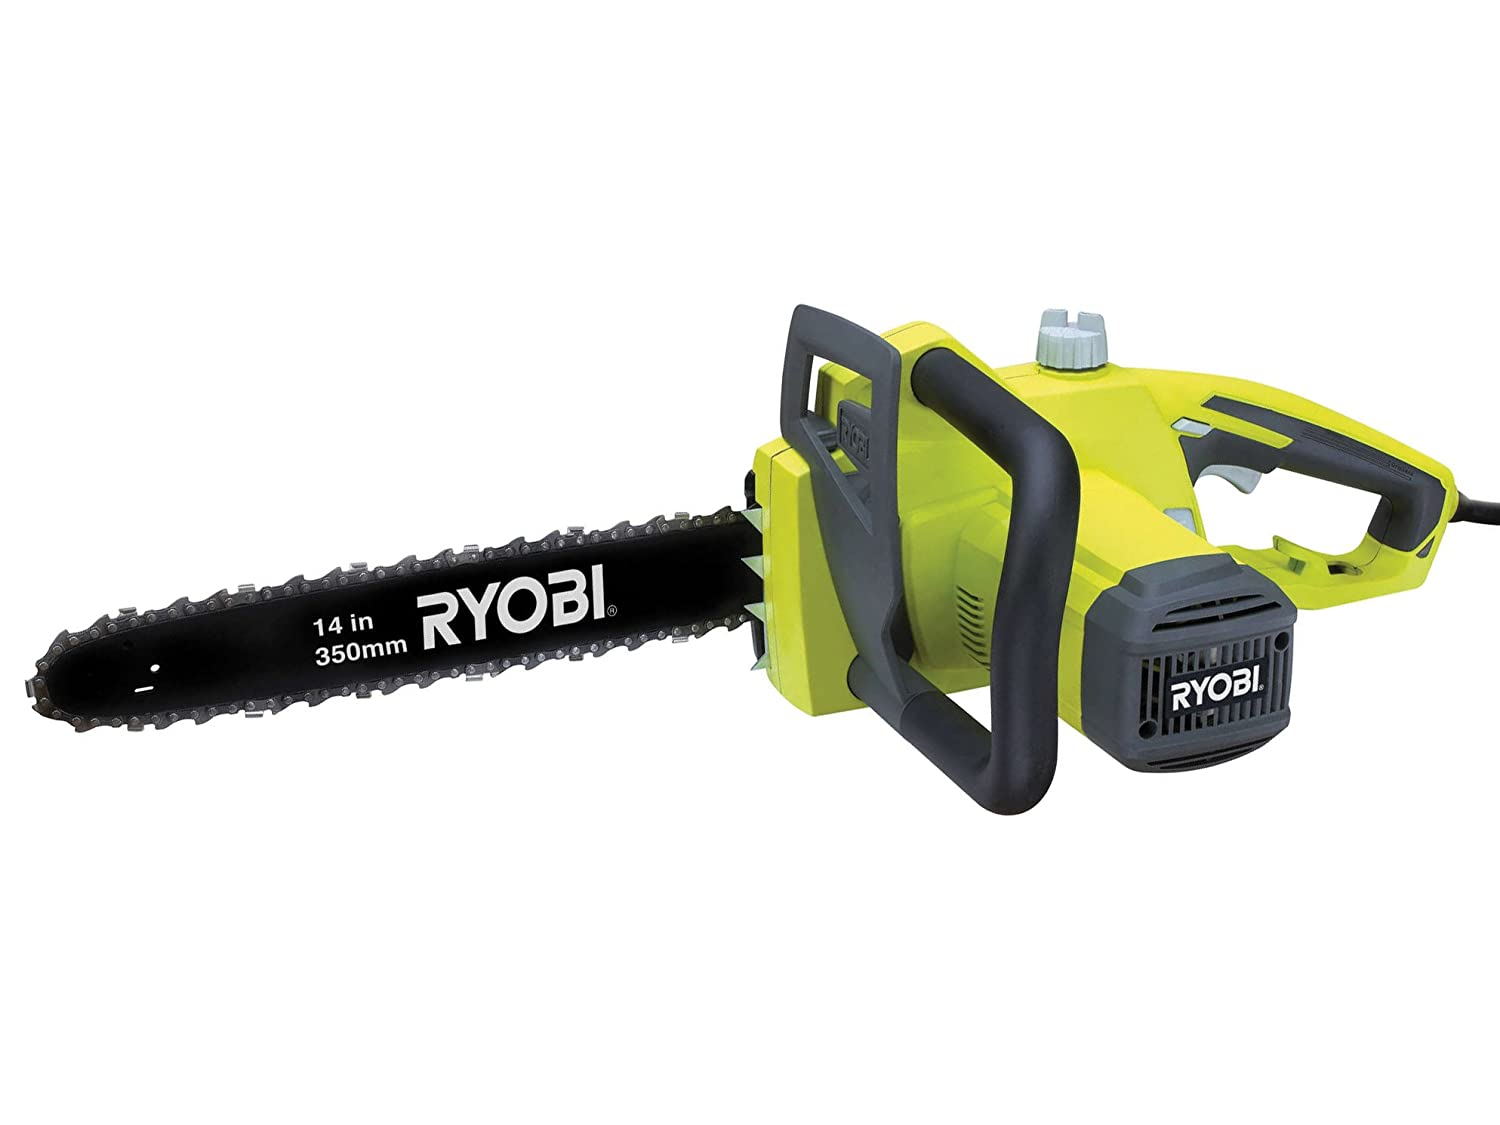 Ryobi rcs1835 chainsaw 1800 w amazon diy tools keyboard keysfo Gallery